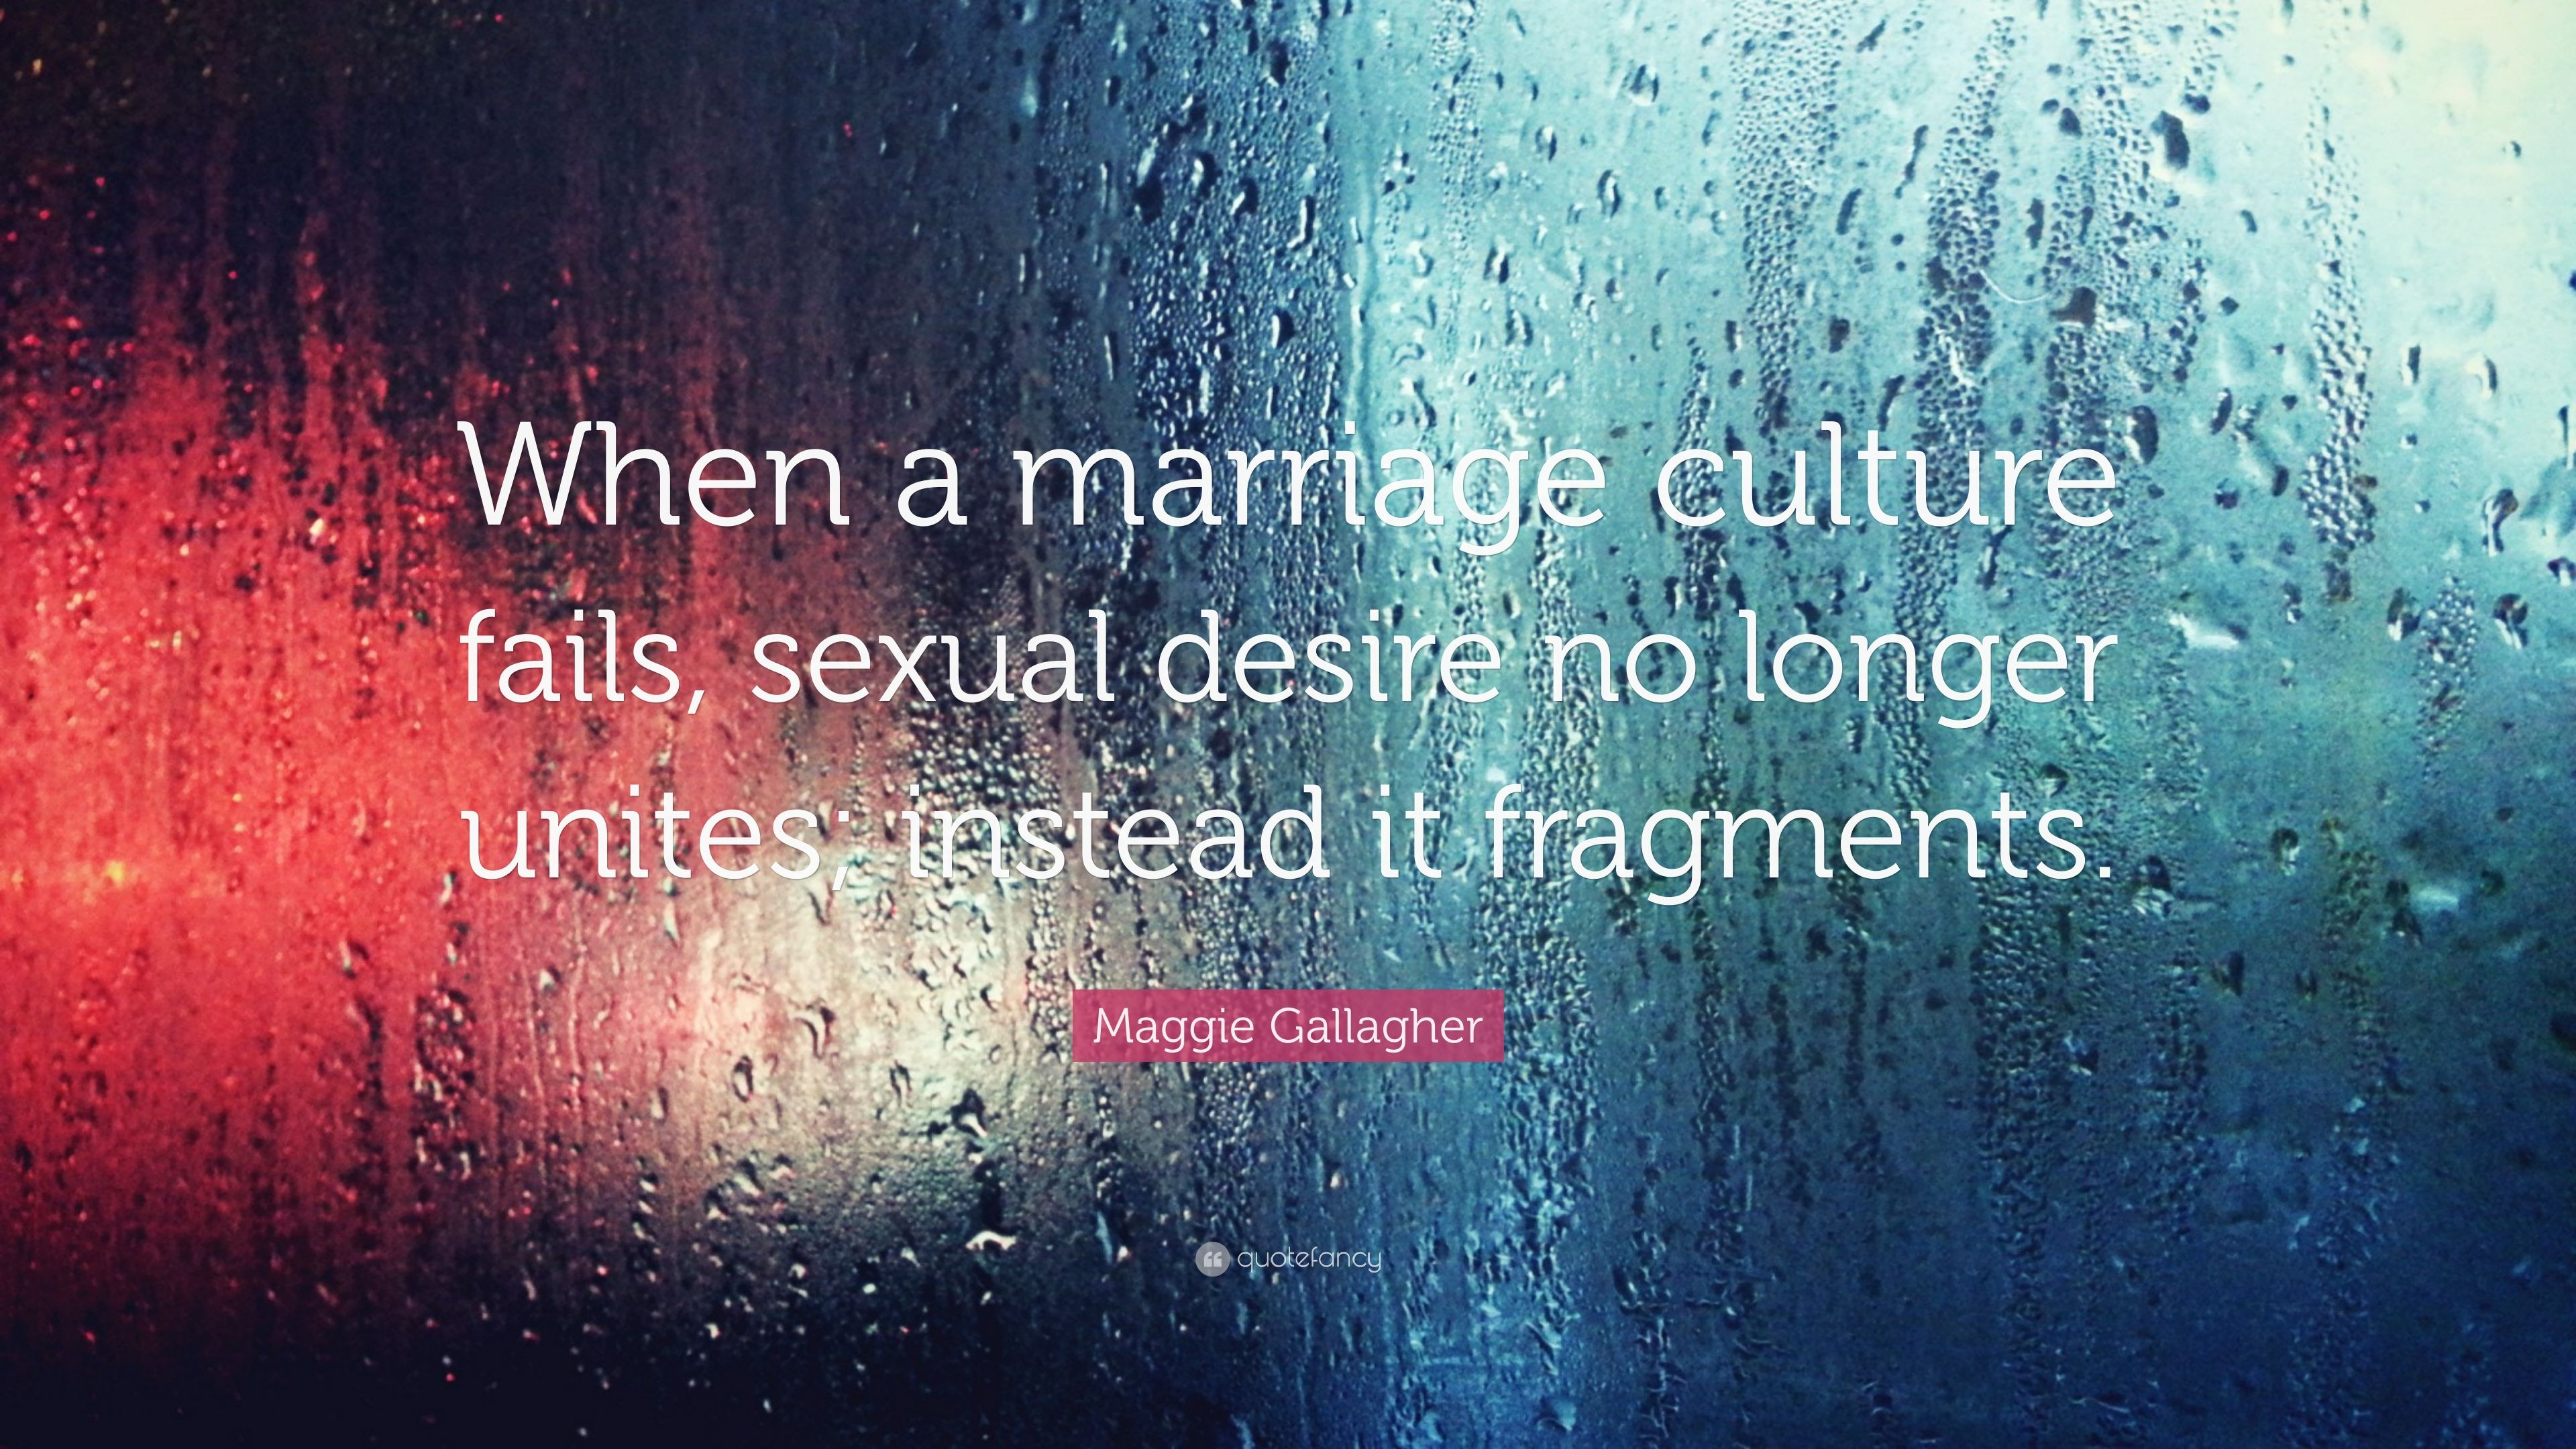 Maggie Gallagher Quote: When a marriage culture fails